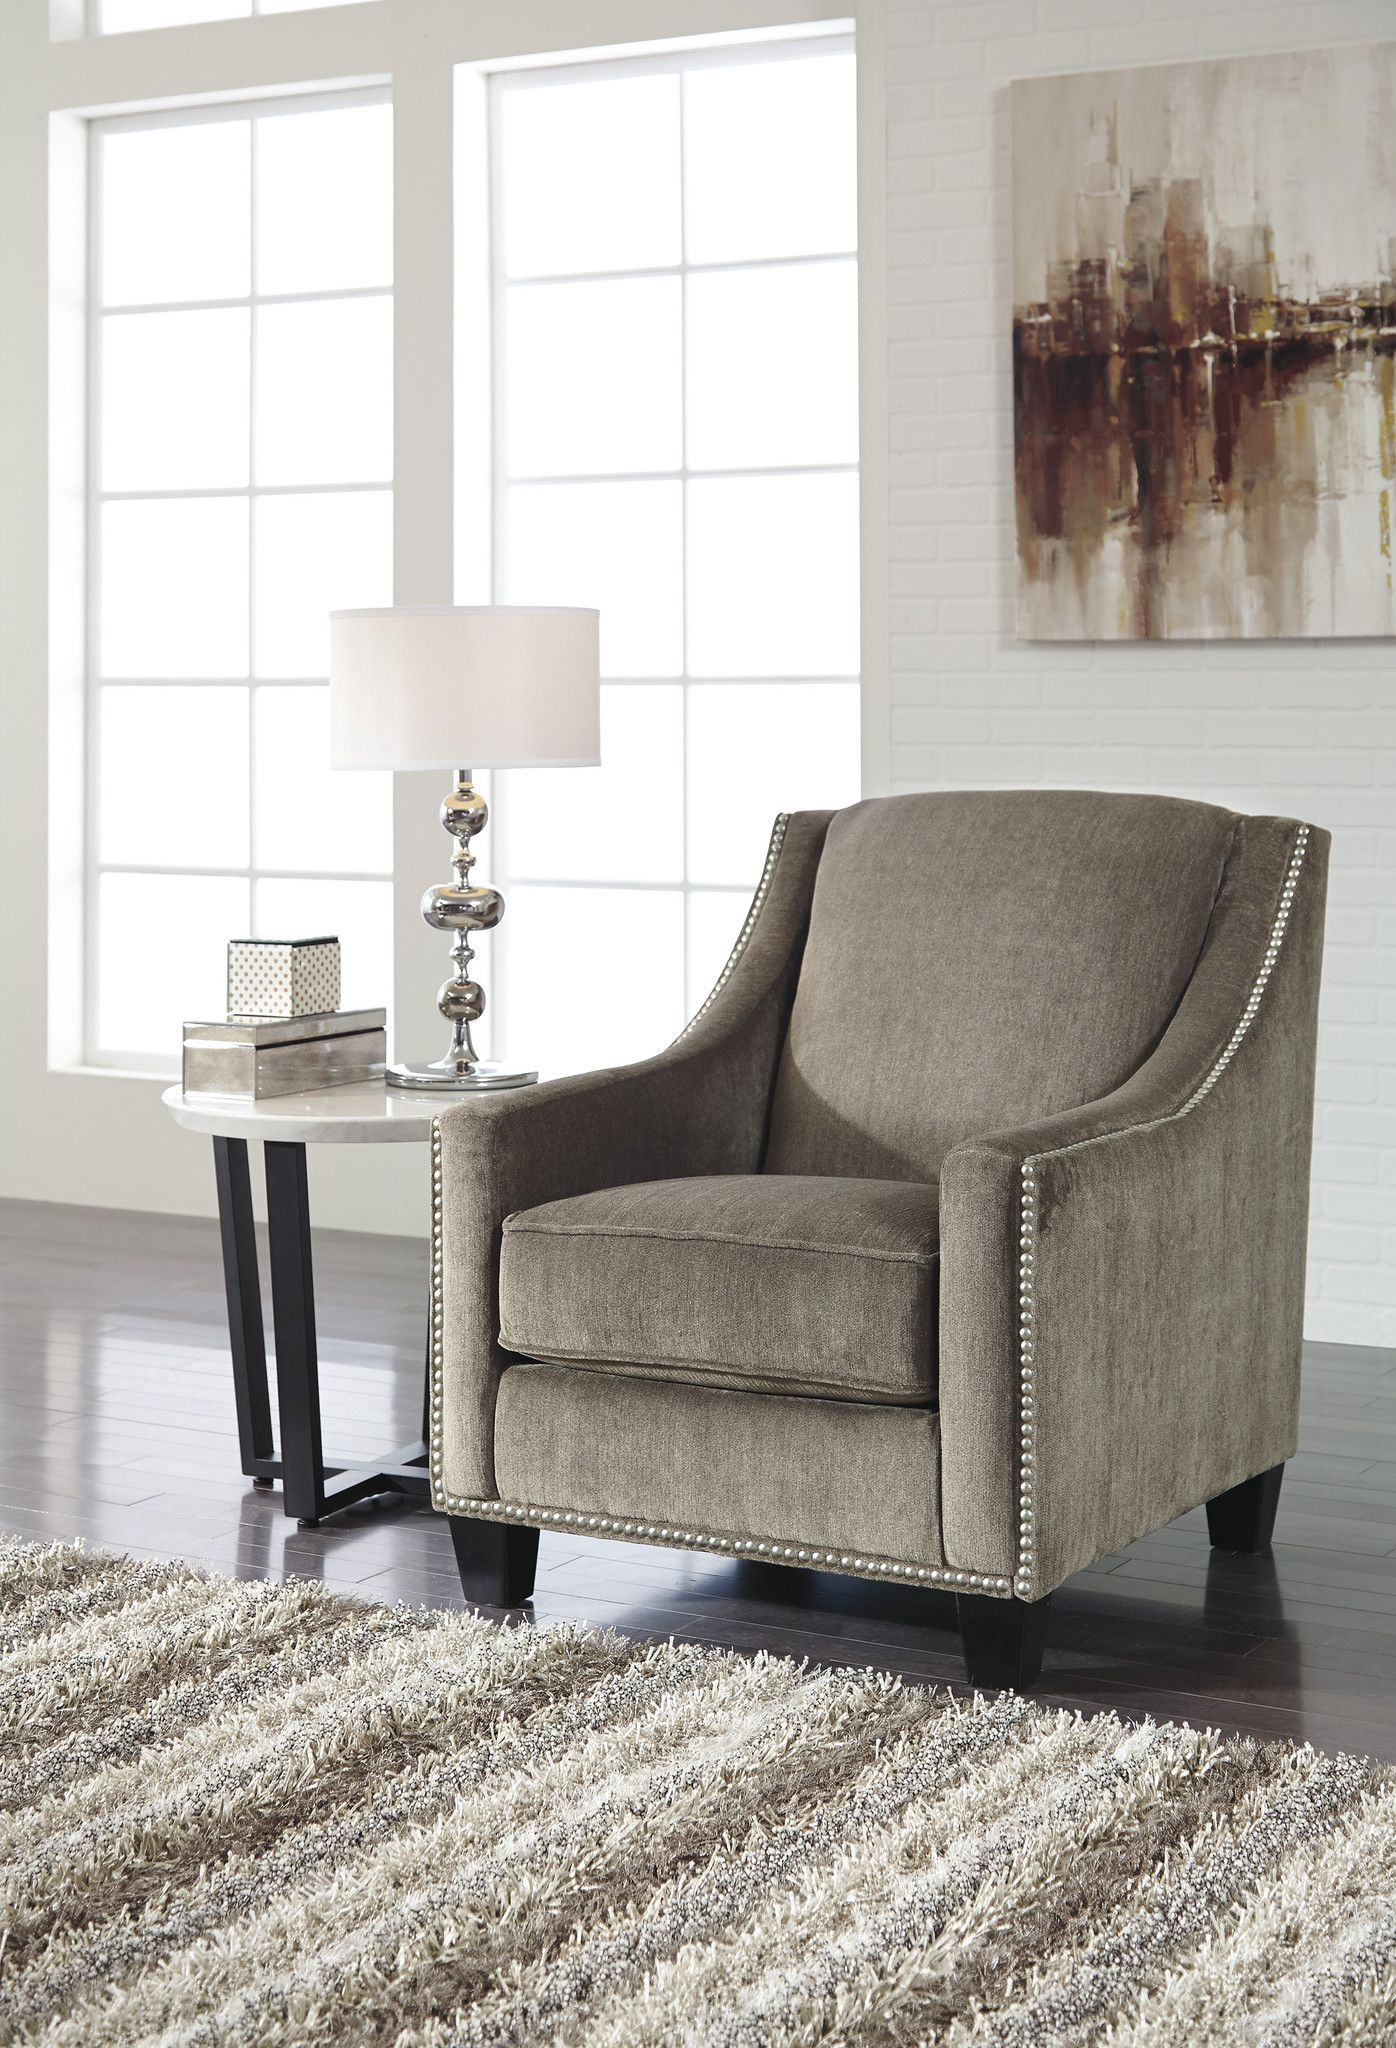 Accent Chairs Ashley Furniture Donnell Accent Chair In Our Showroom Accent Chairs Ashley